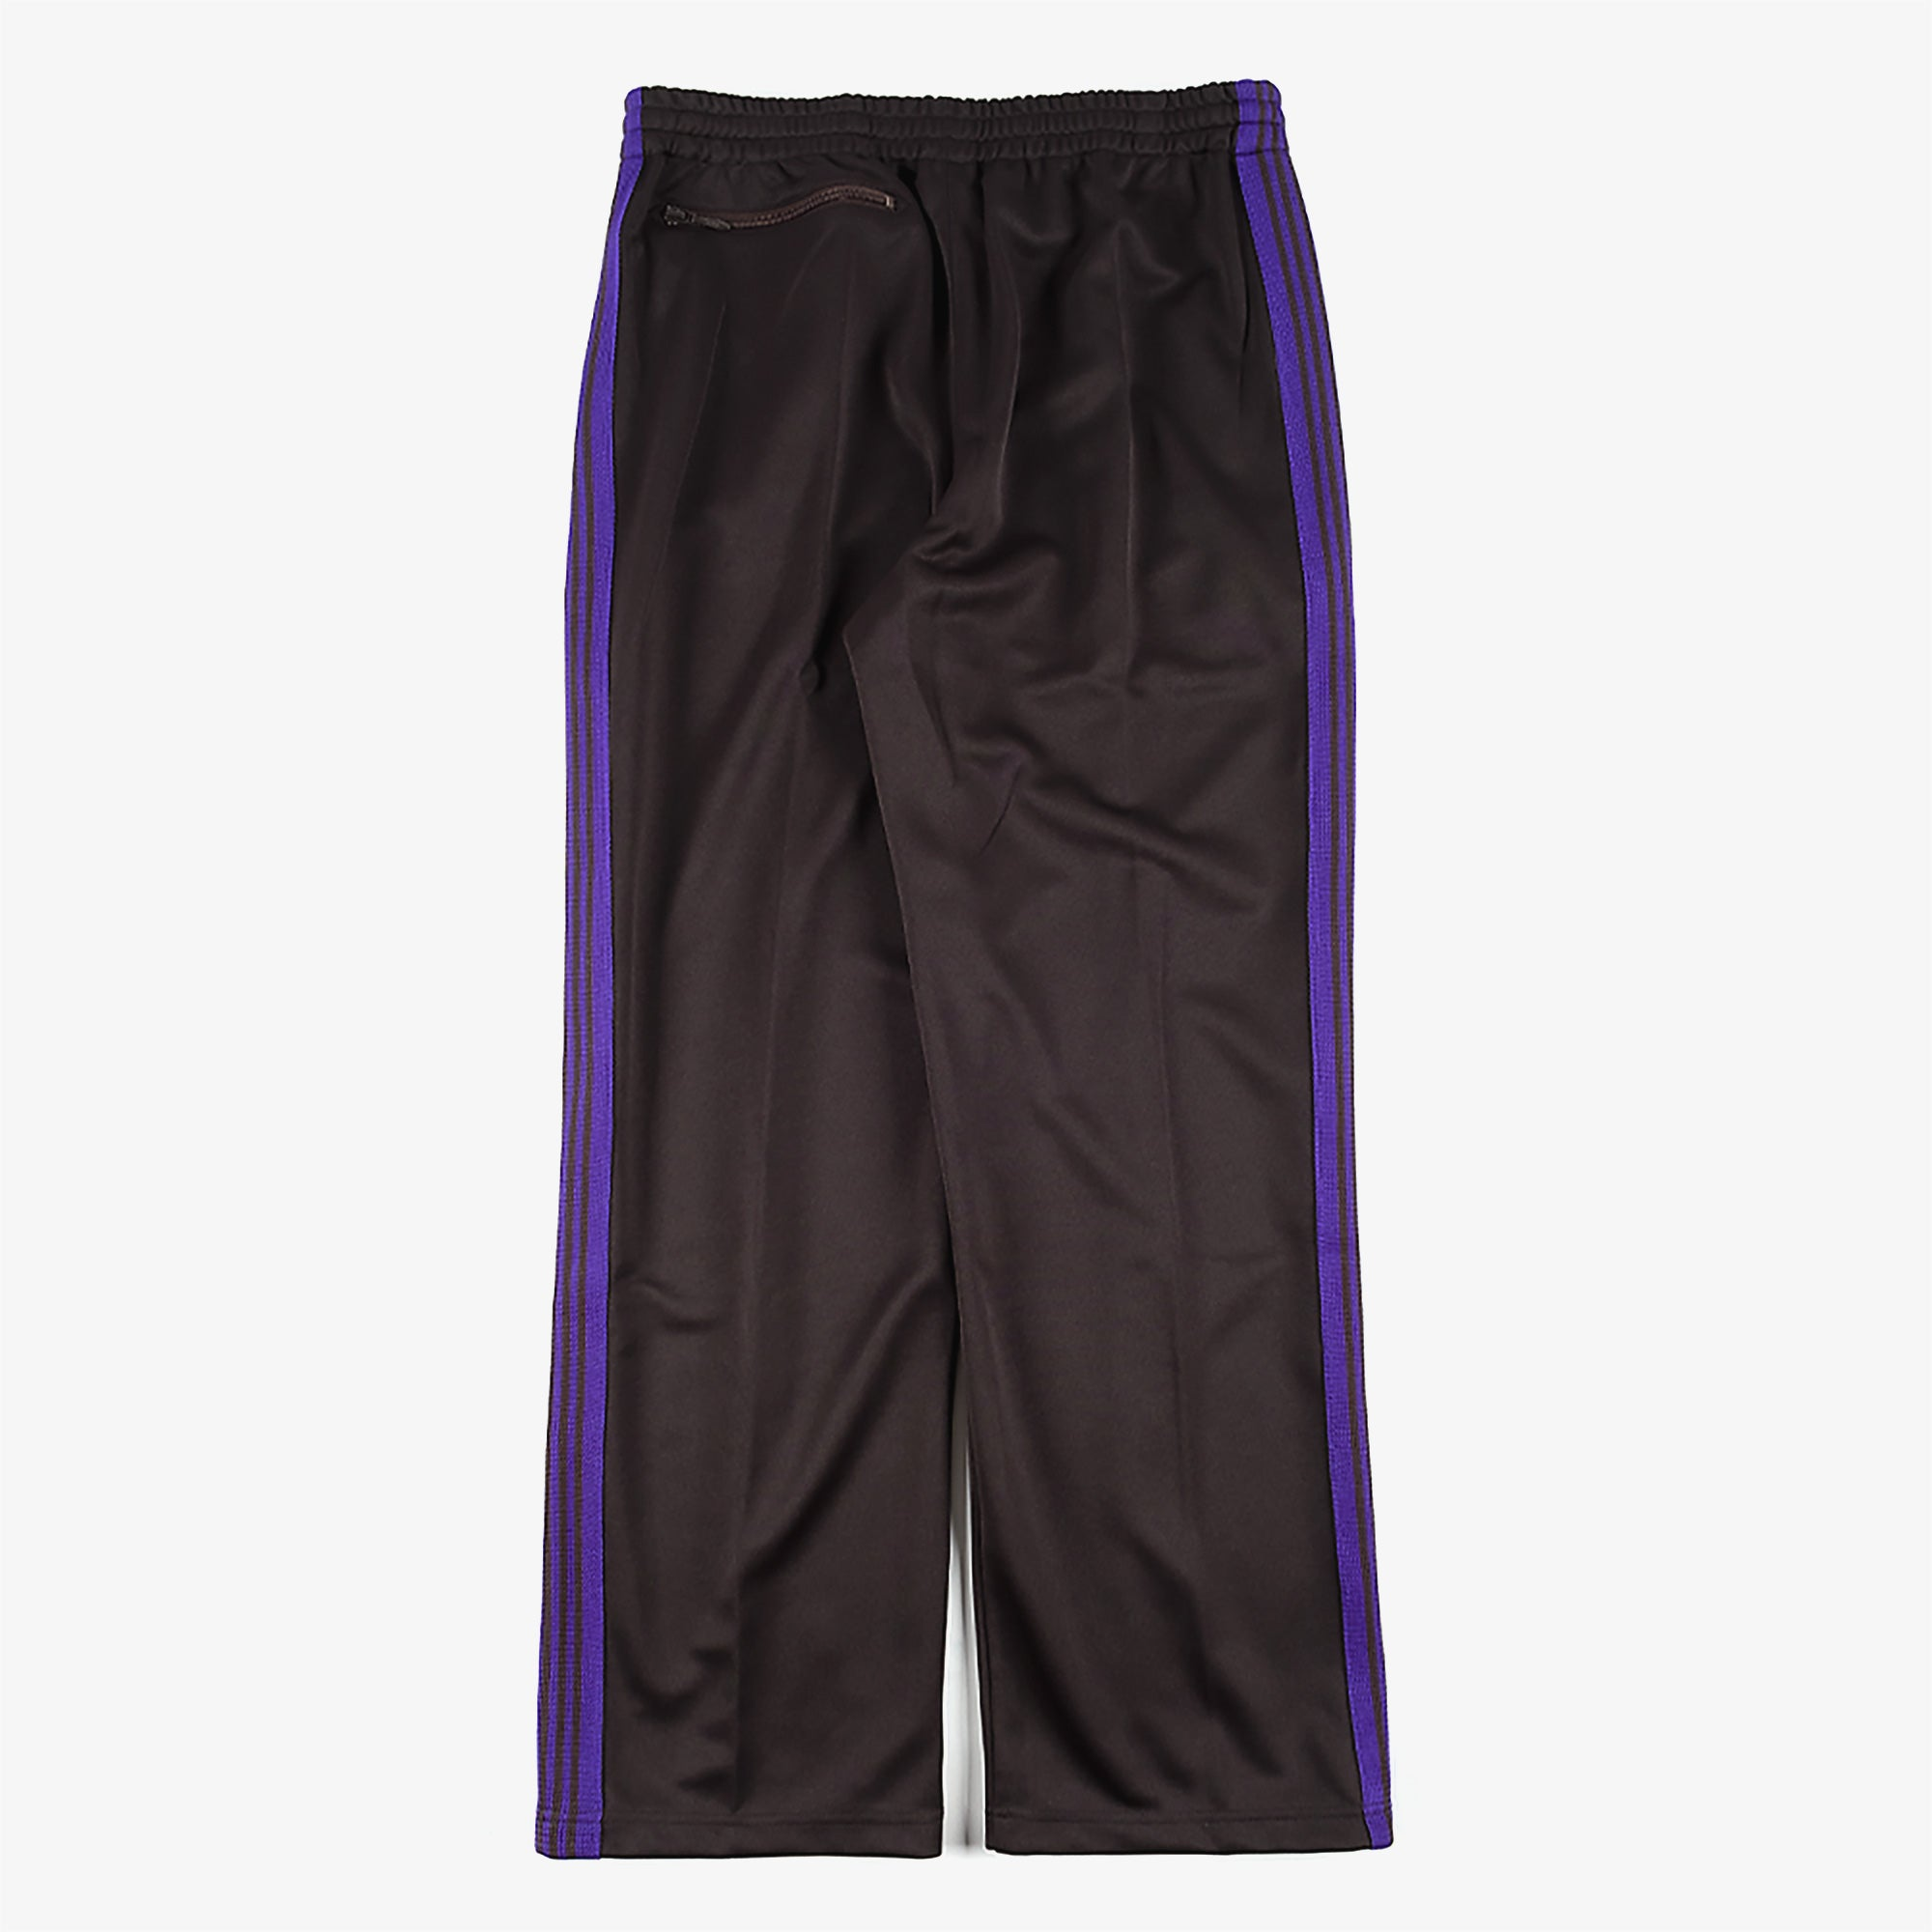 Needles M' Track Pant Poly Smooth - Charcoal 5